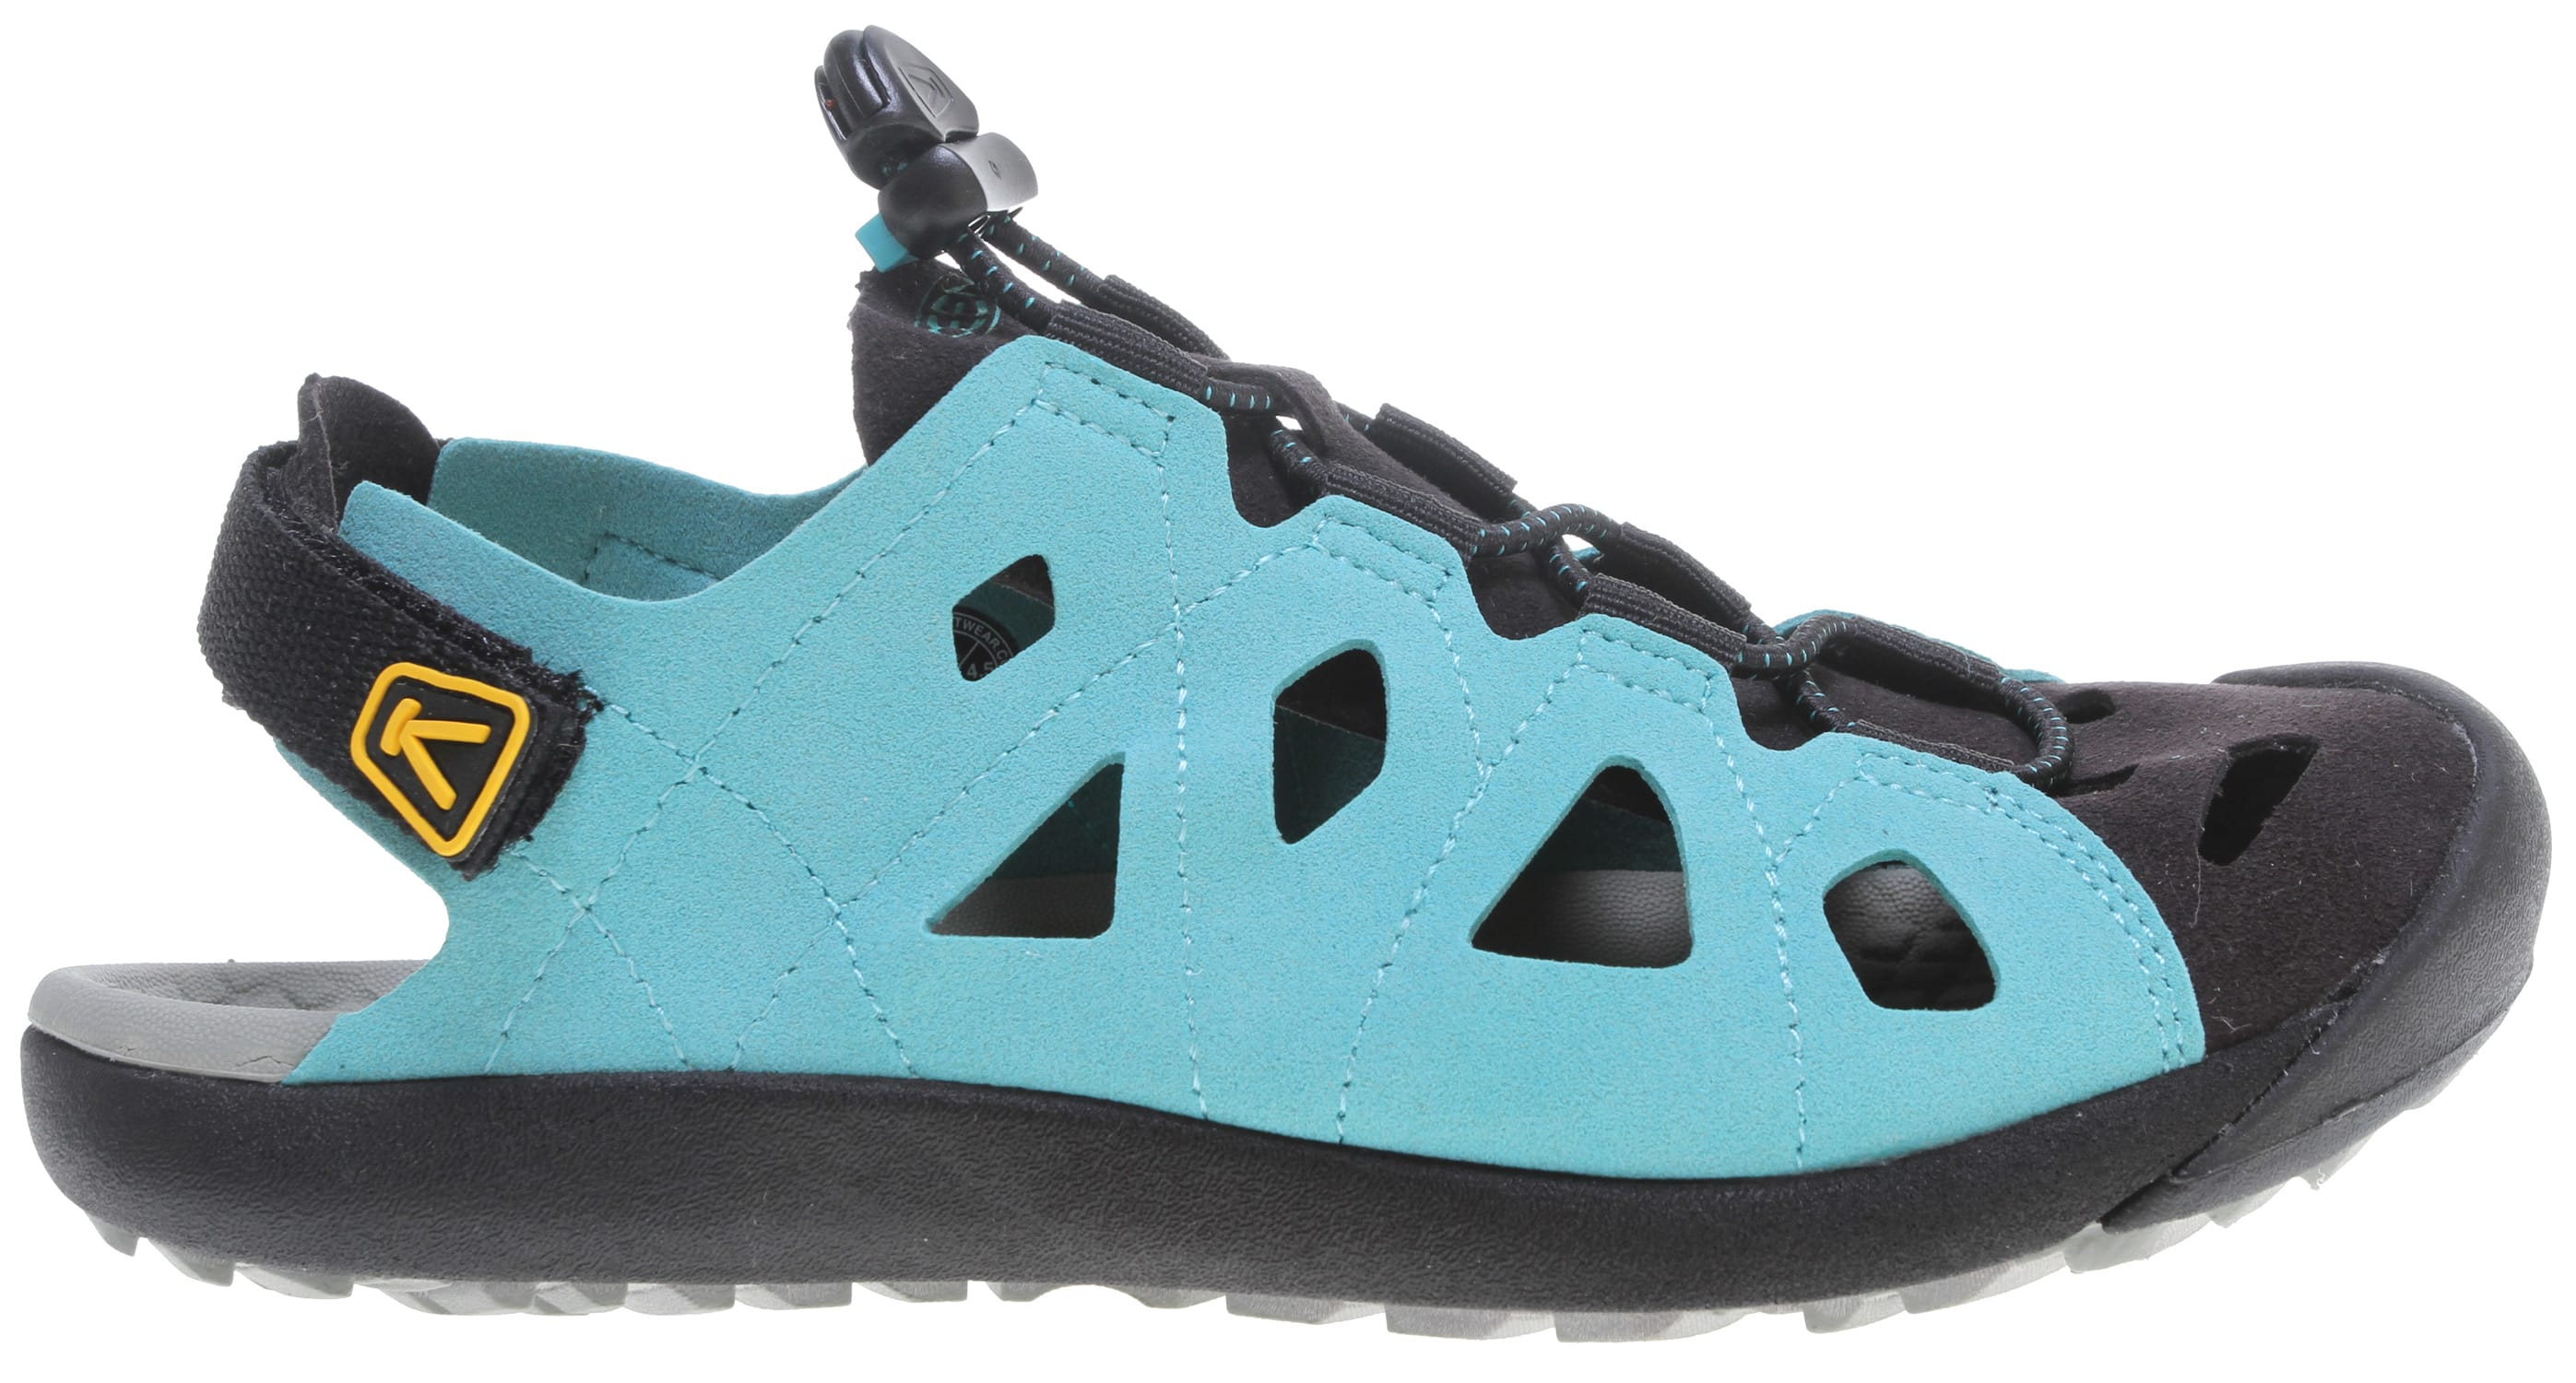 Keen is giving away a pair of their women's Whisper waterfront sandals to one Vanilla Joy reader